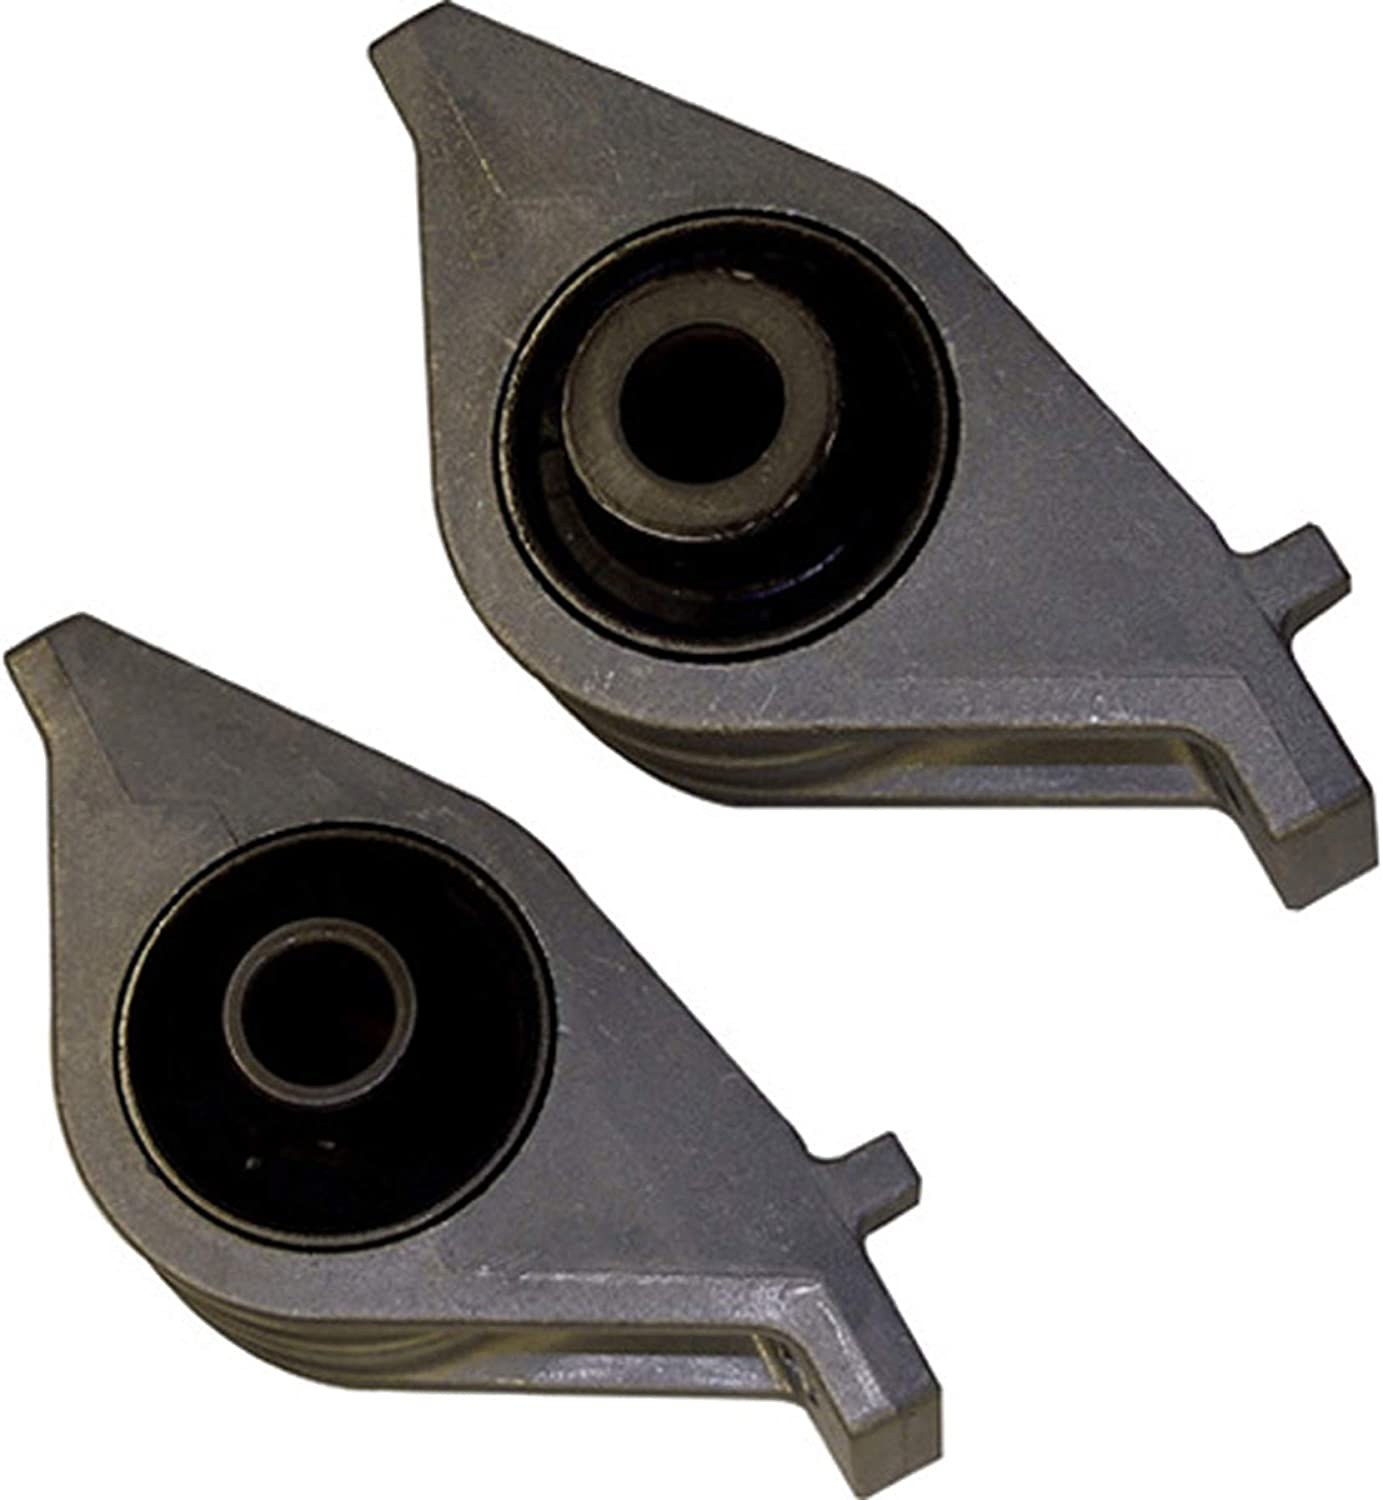 Motor Mount Fits 100% quality warranty 2008 Yamaha Anniv Lowest price challenge 40th RS Vector RS90GTA